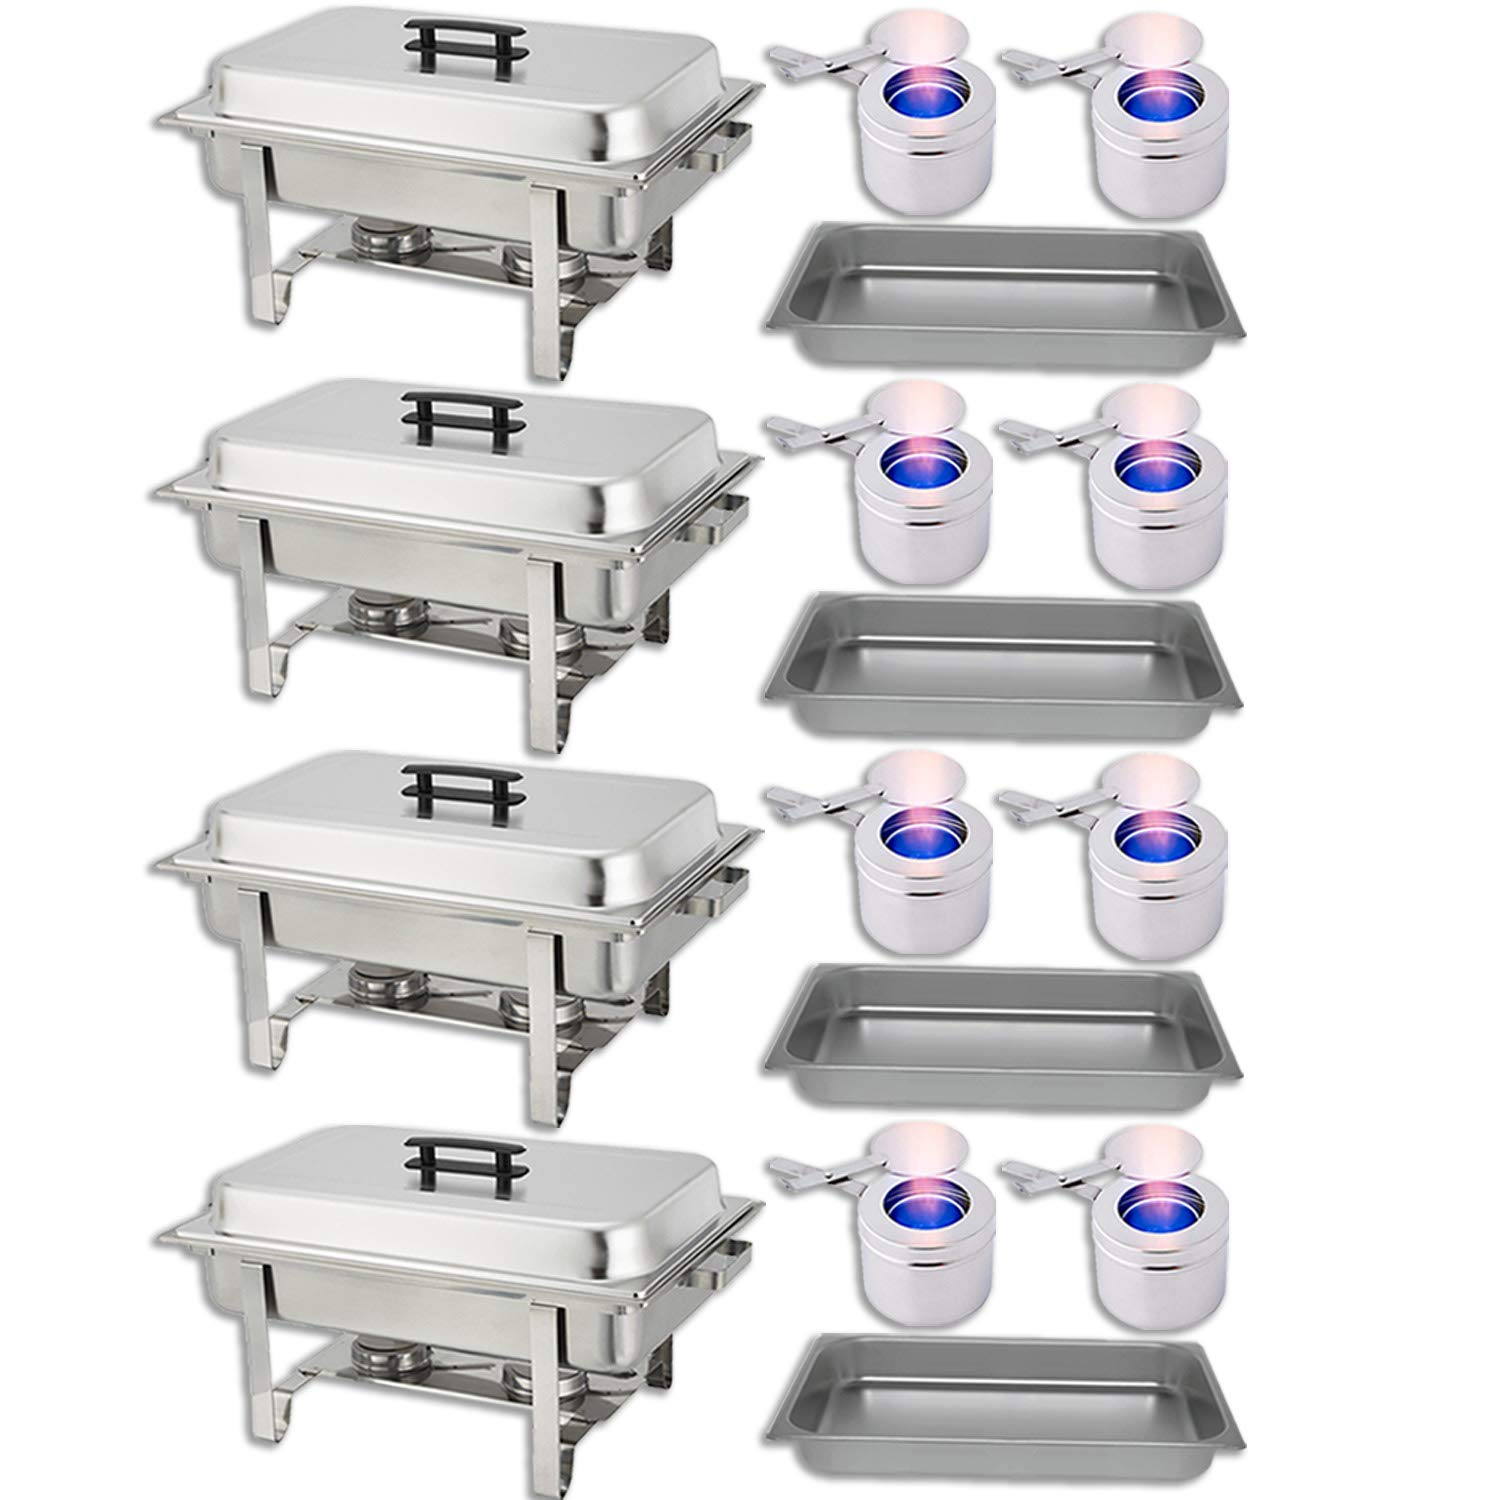 Chafing Dish Buffet Set - Water Pan + Food Pan (8 qt) + Frame + 2 Fuel Holders - Stainless-Steel Warmer Kit 4 Pack